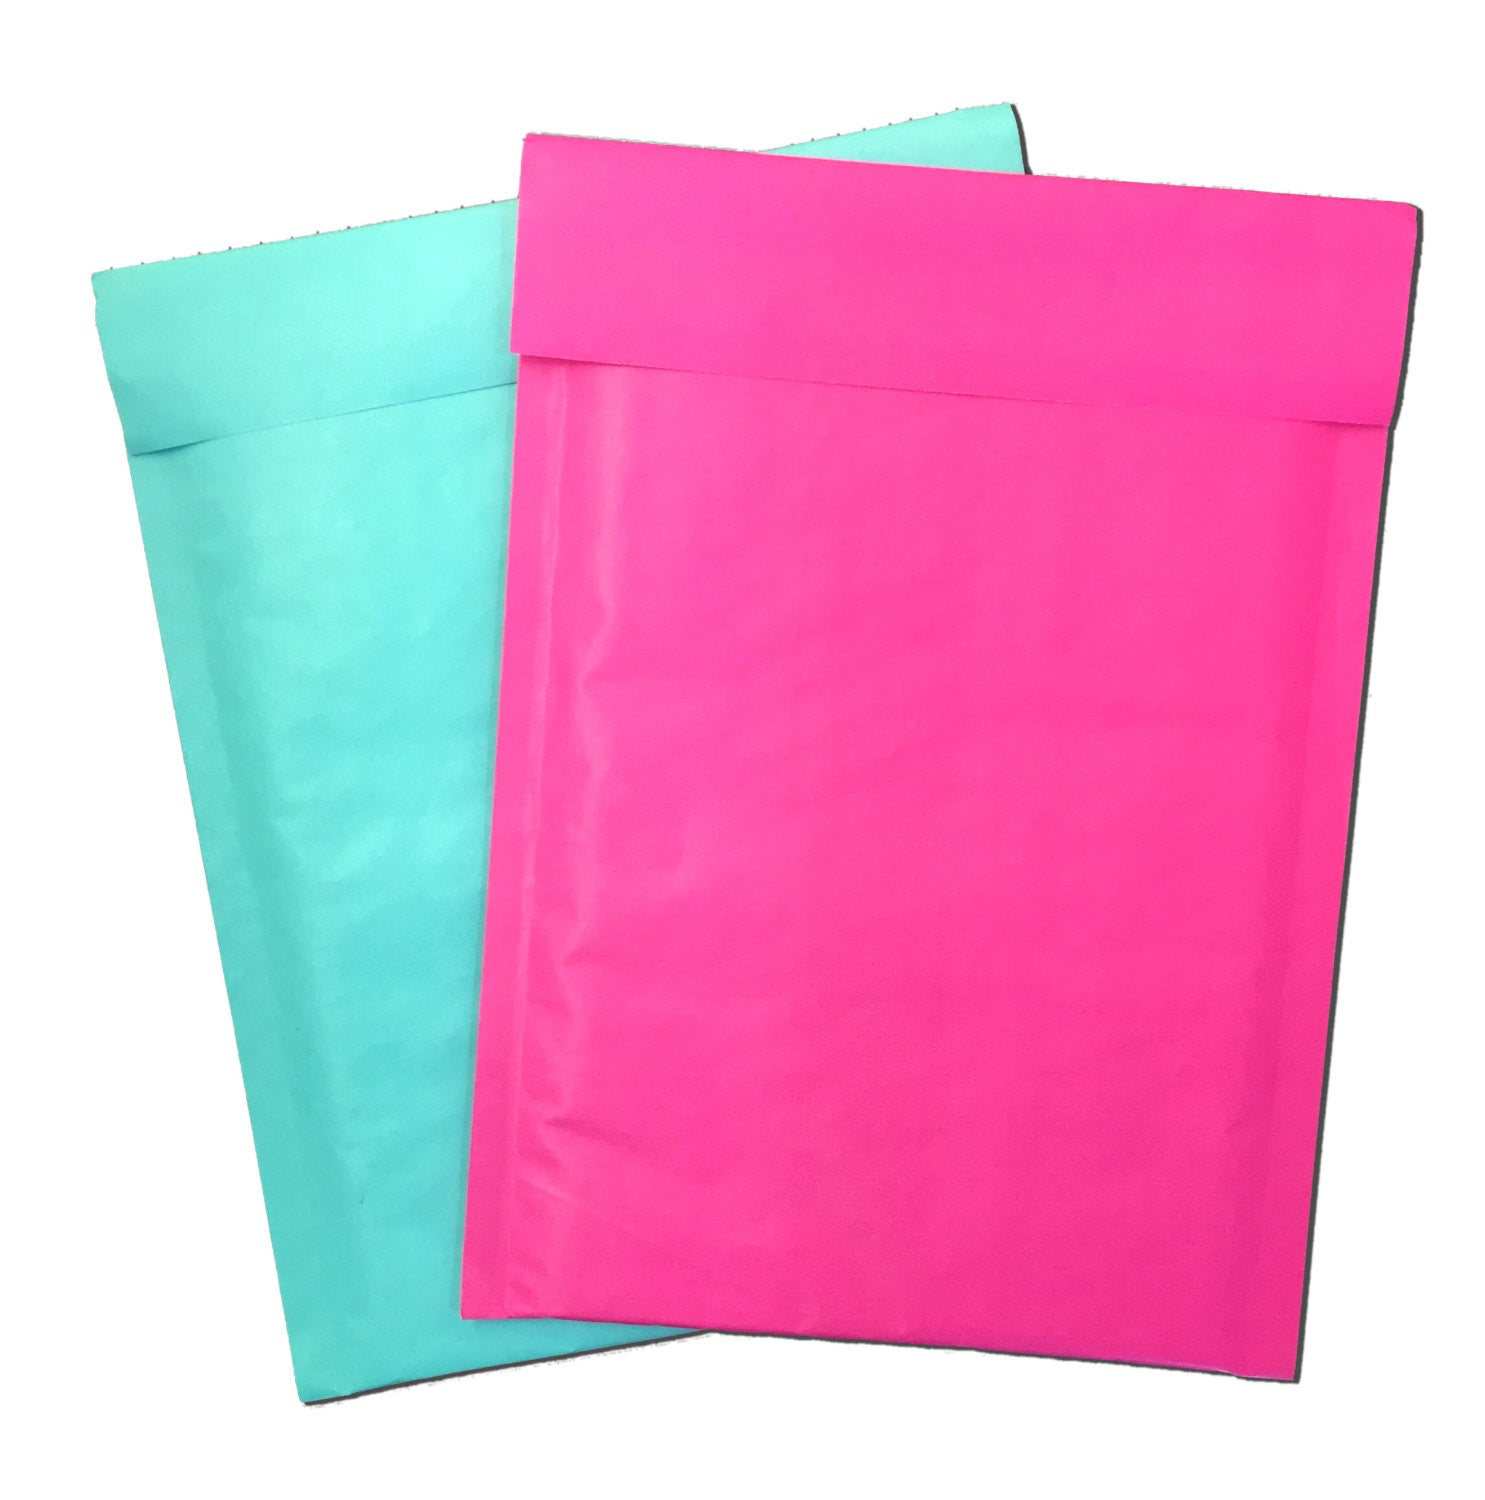 "Exclusive Aqua Kraft and Hot Pink Kraft 6"" x 10"" Poly Bubble Mailers, #0 Colored Padded Self Adhesive Envelopes"